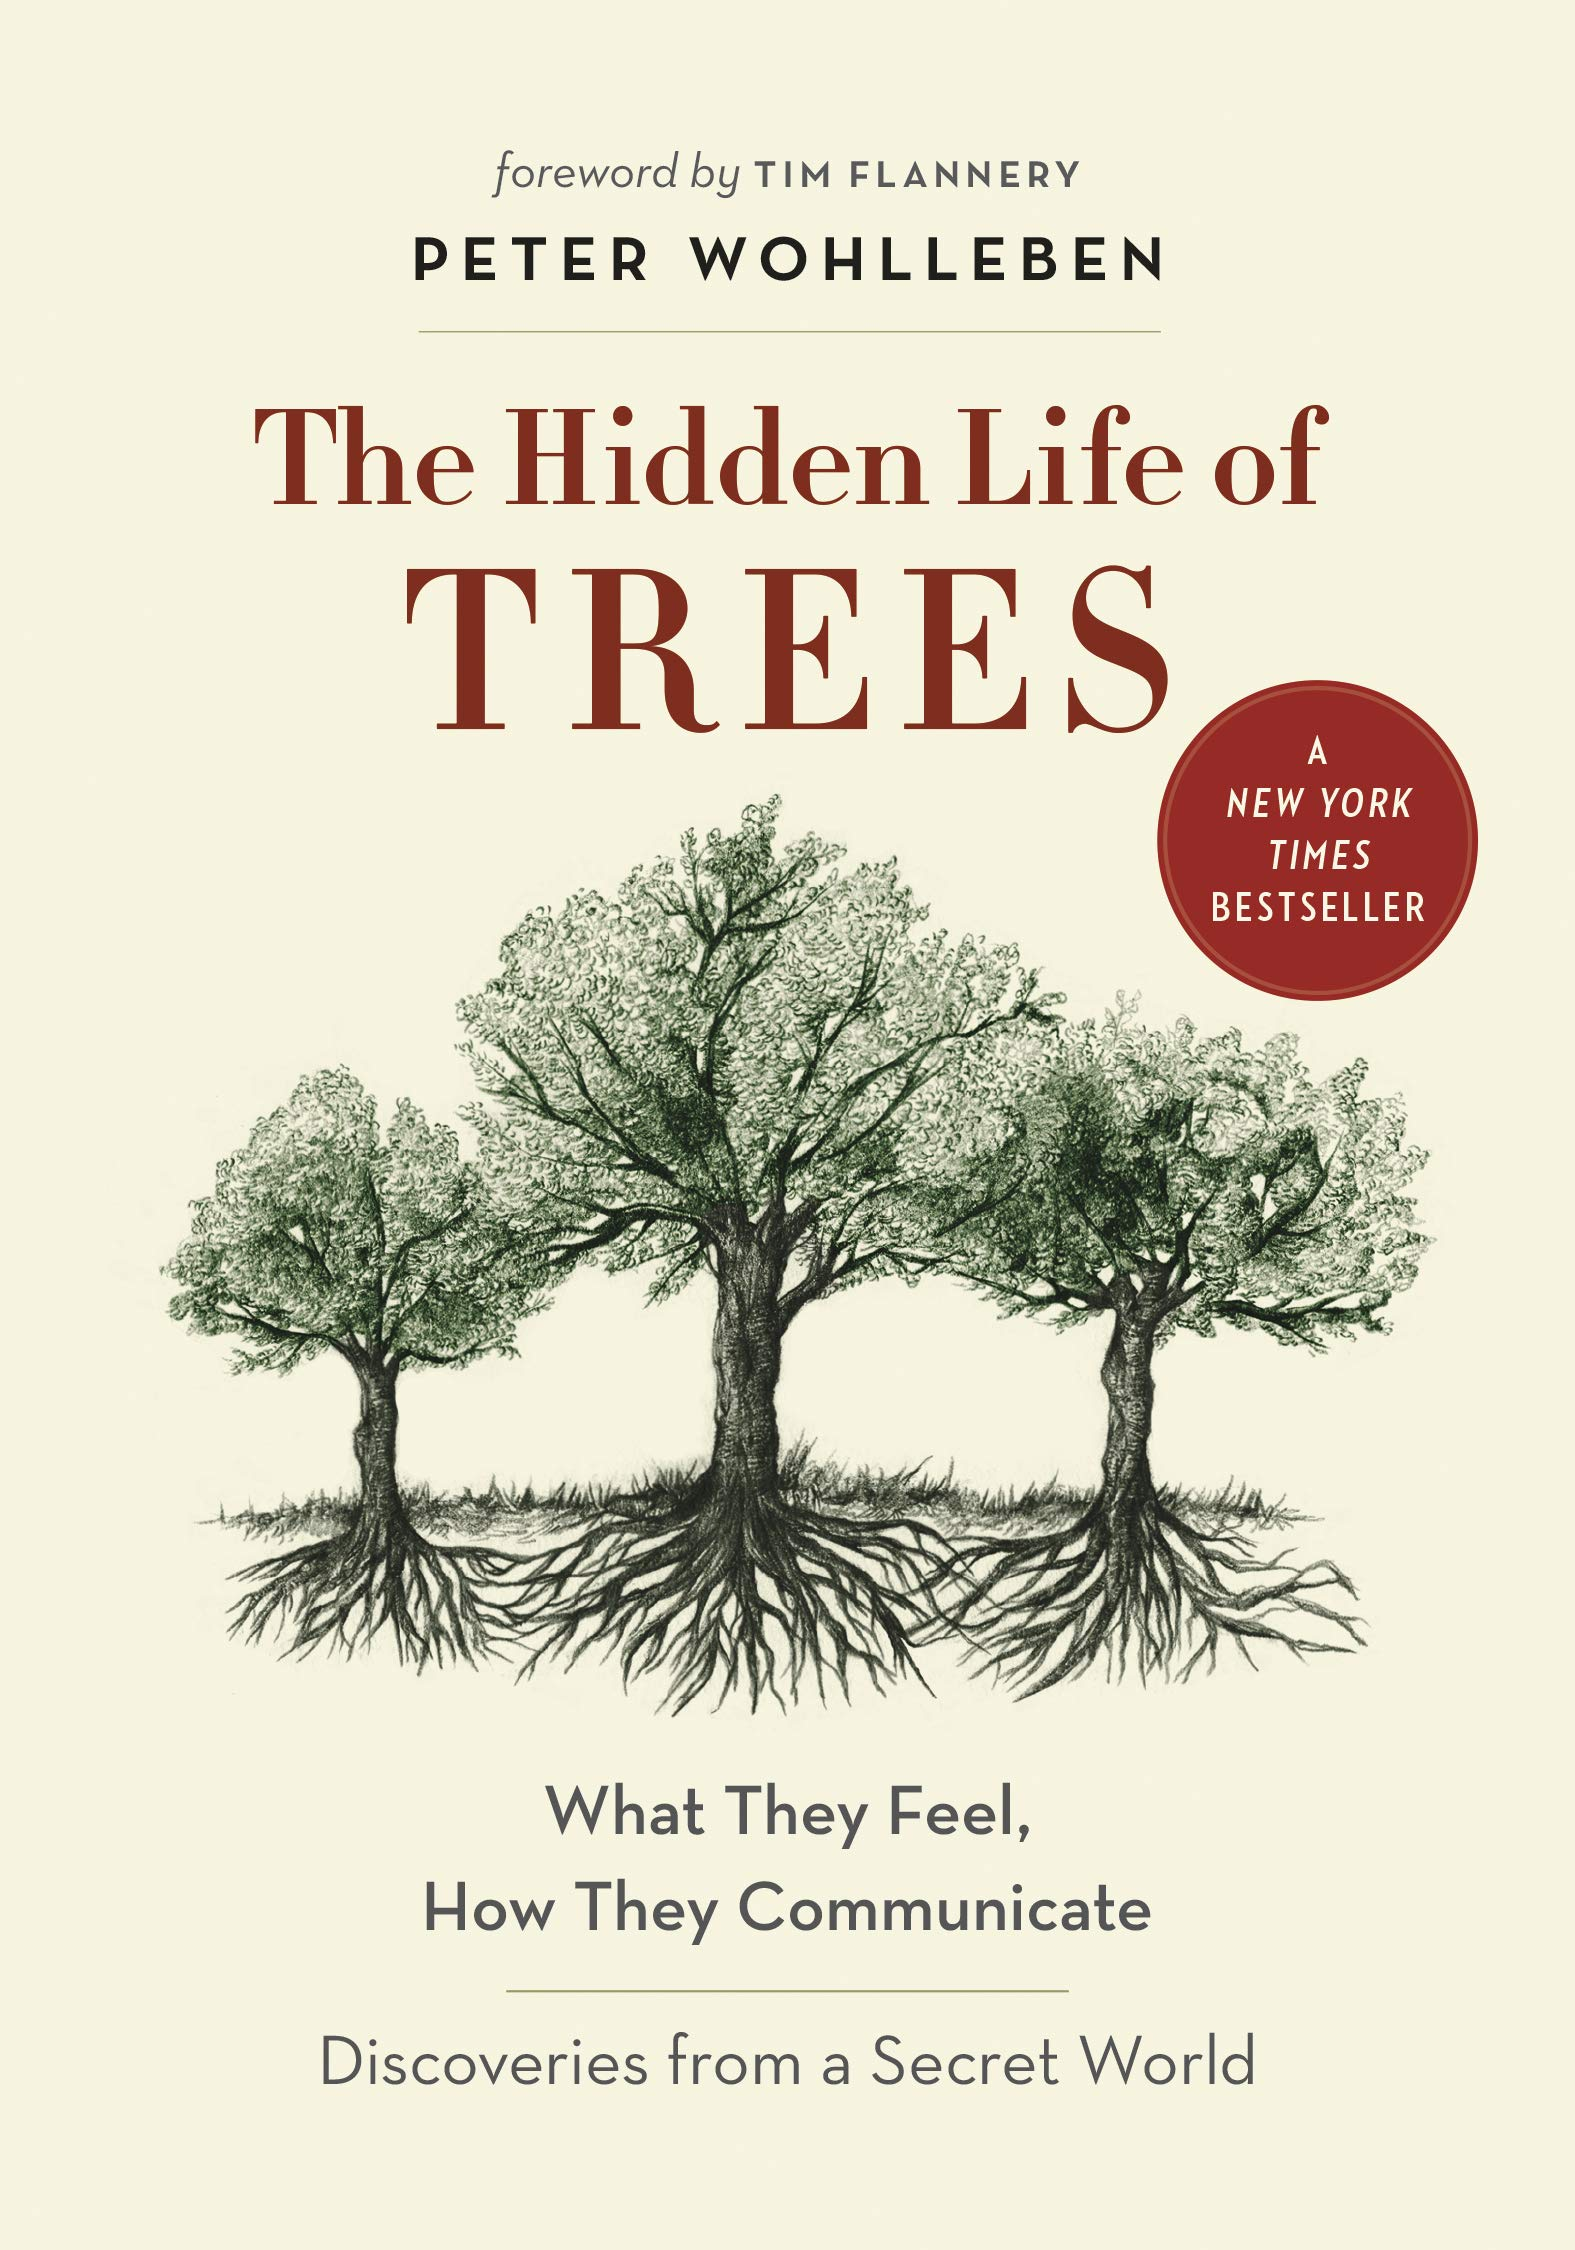 Hidden Life of Trees, book for Hearthside Project 2021